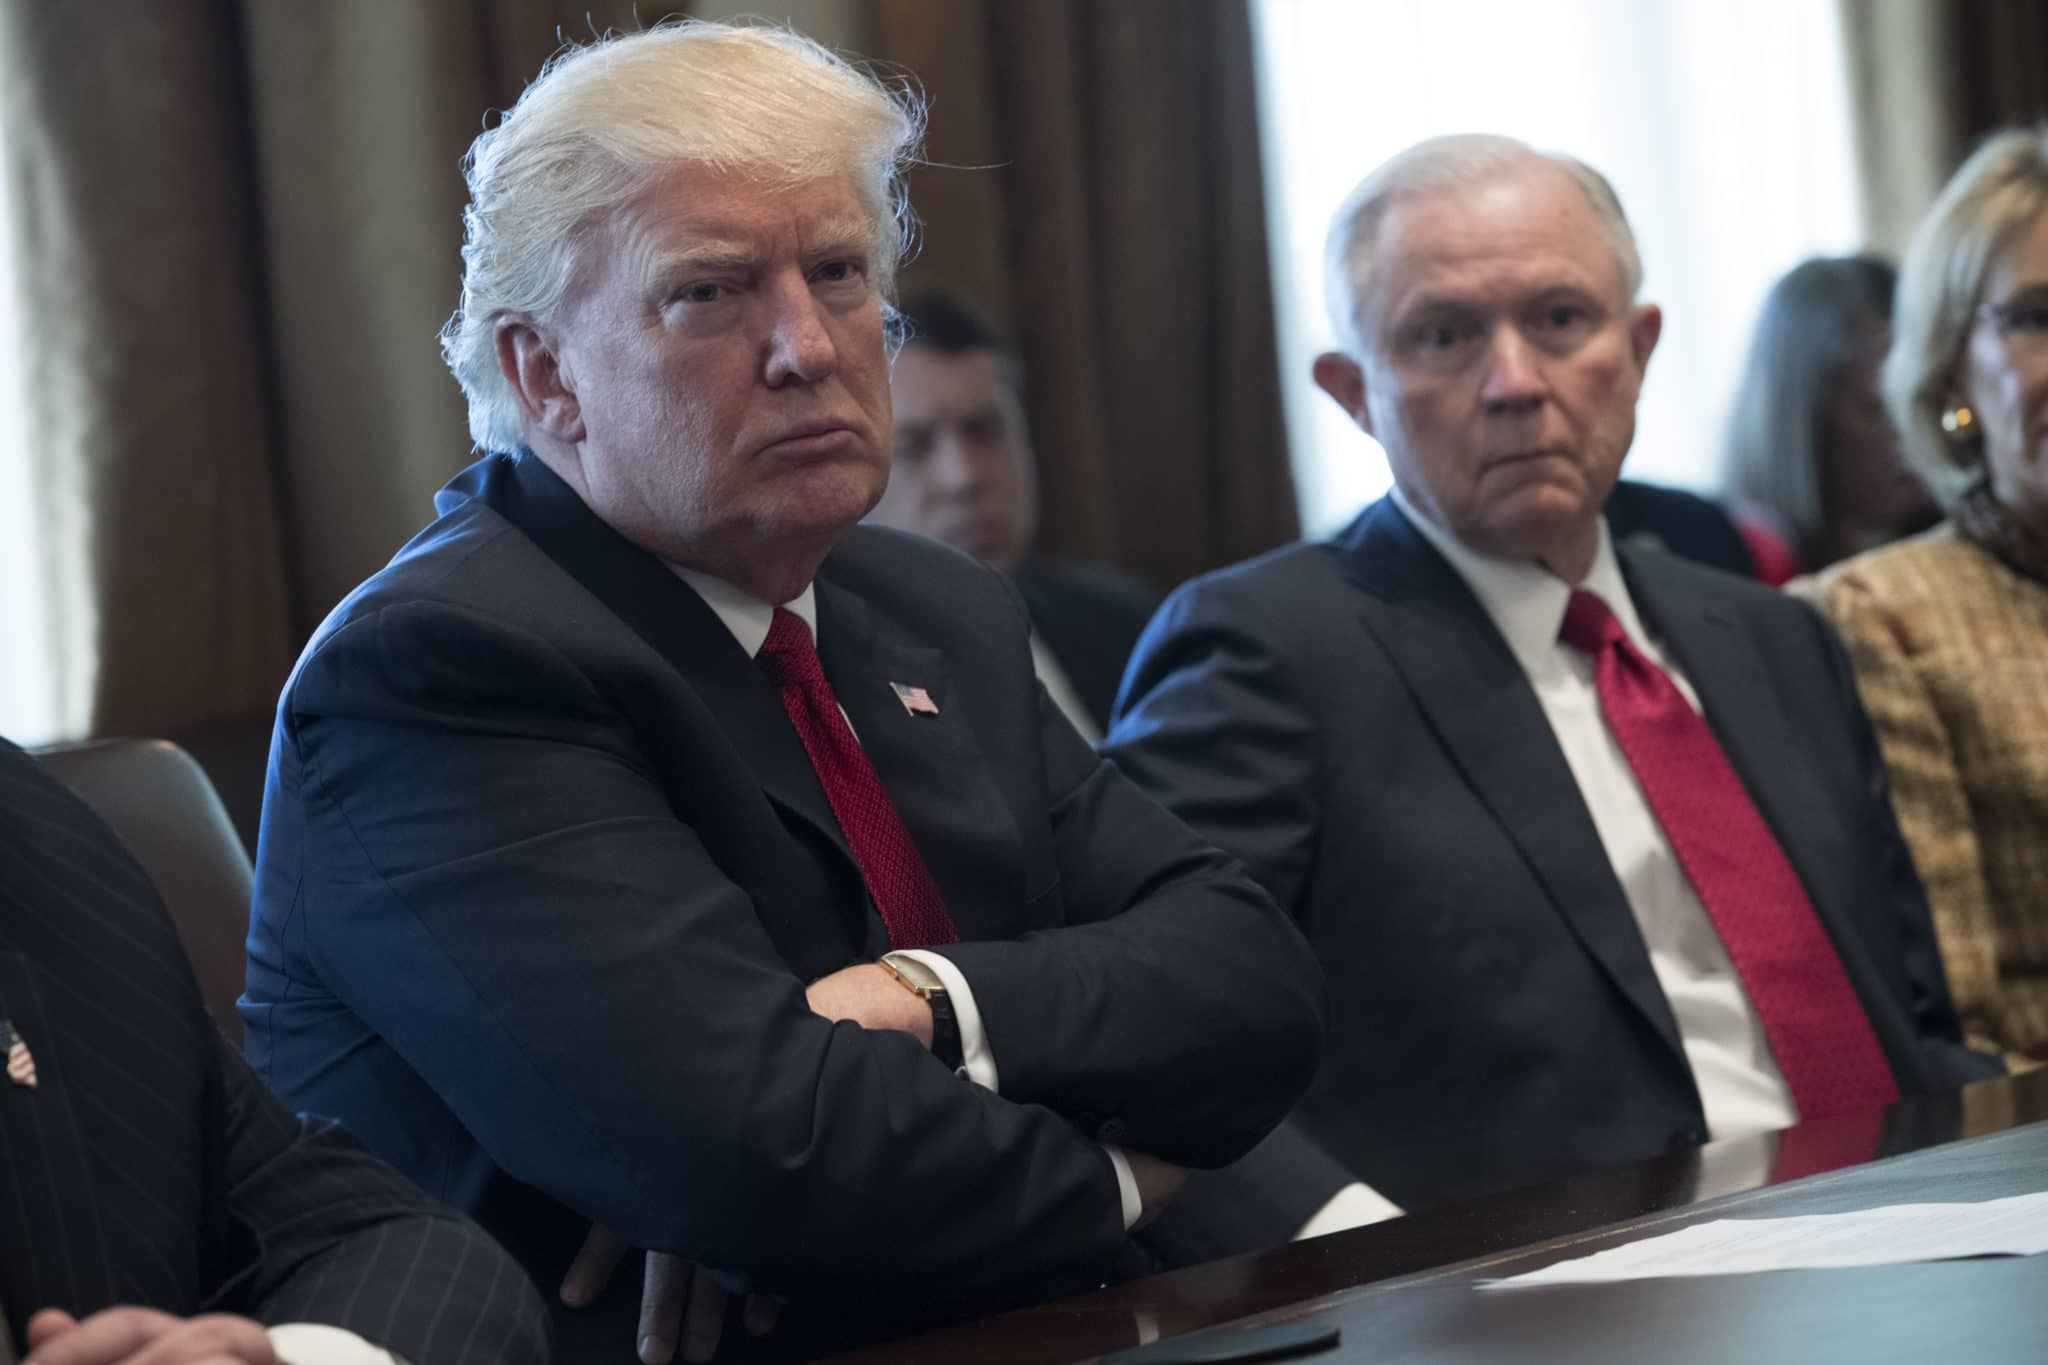 Trump Issues Scathing Response After Jeff Sessions Forced into Runoff for Alabama Senate Seat